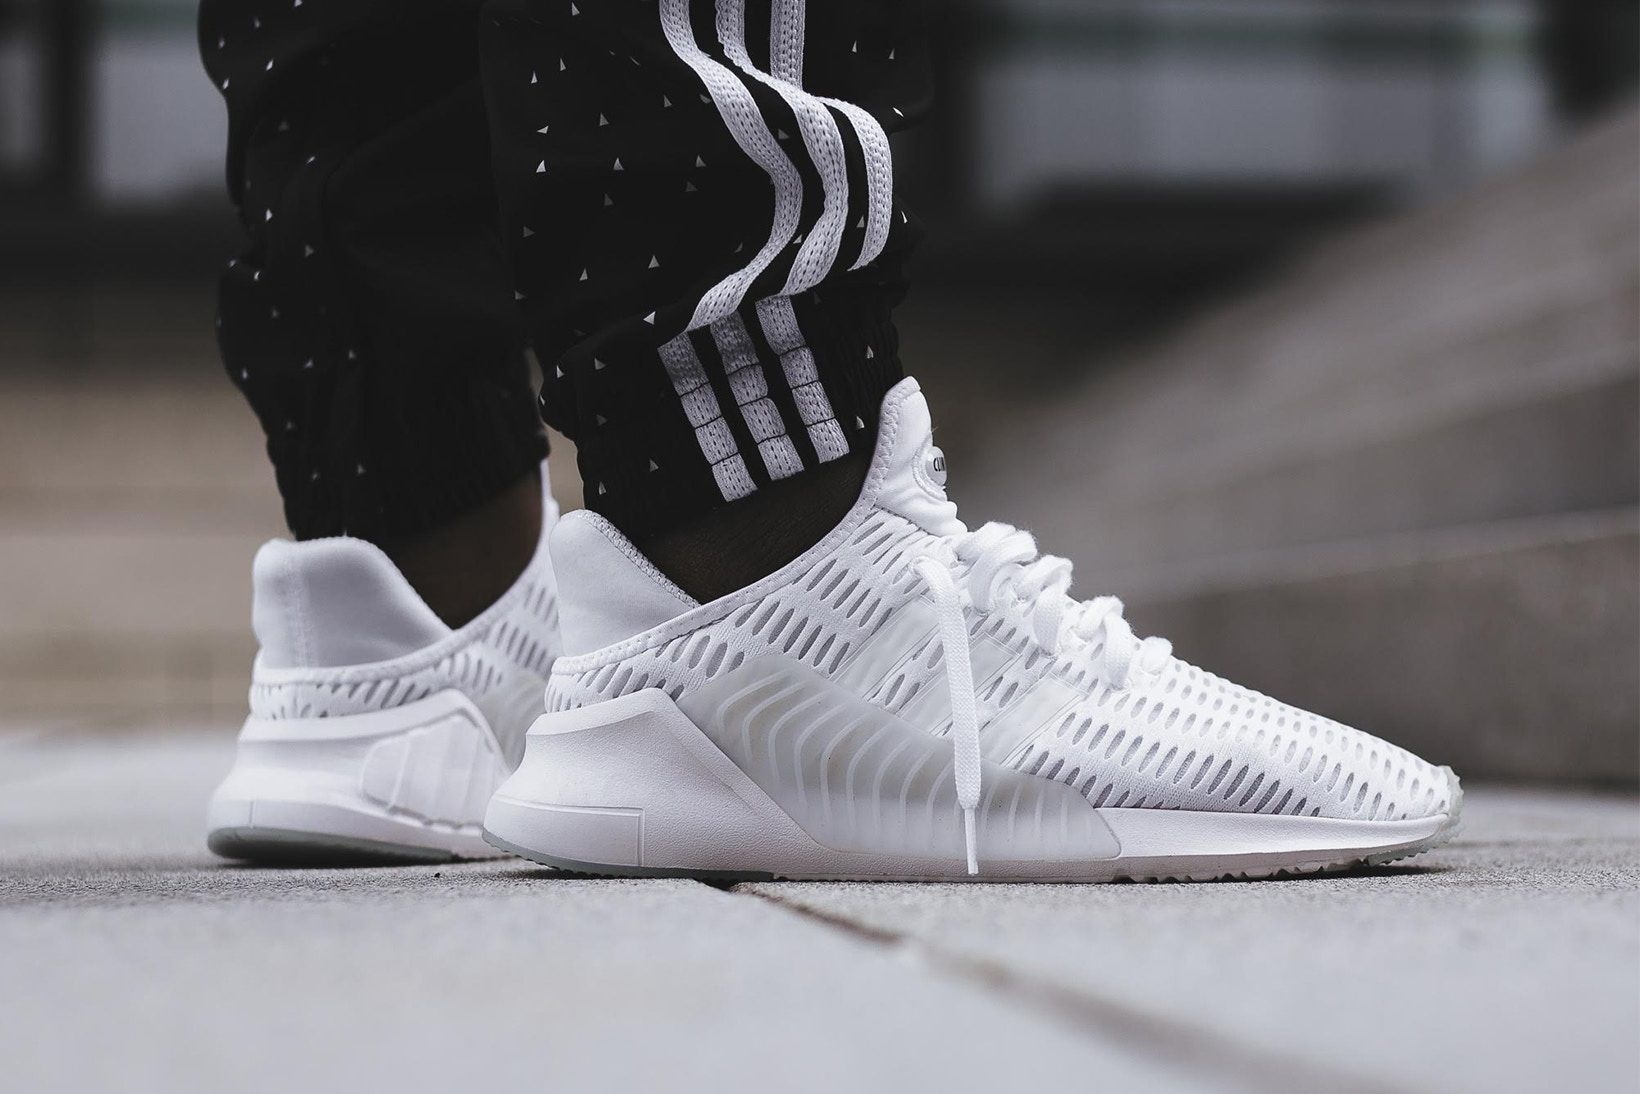 save up to 80% quality products designer fashion An On-Feet Look at the adidas ClimaCool 02/17 in White & Black in ...